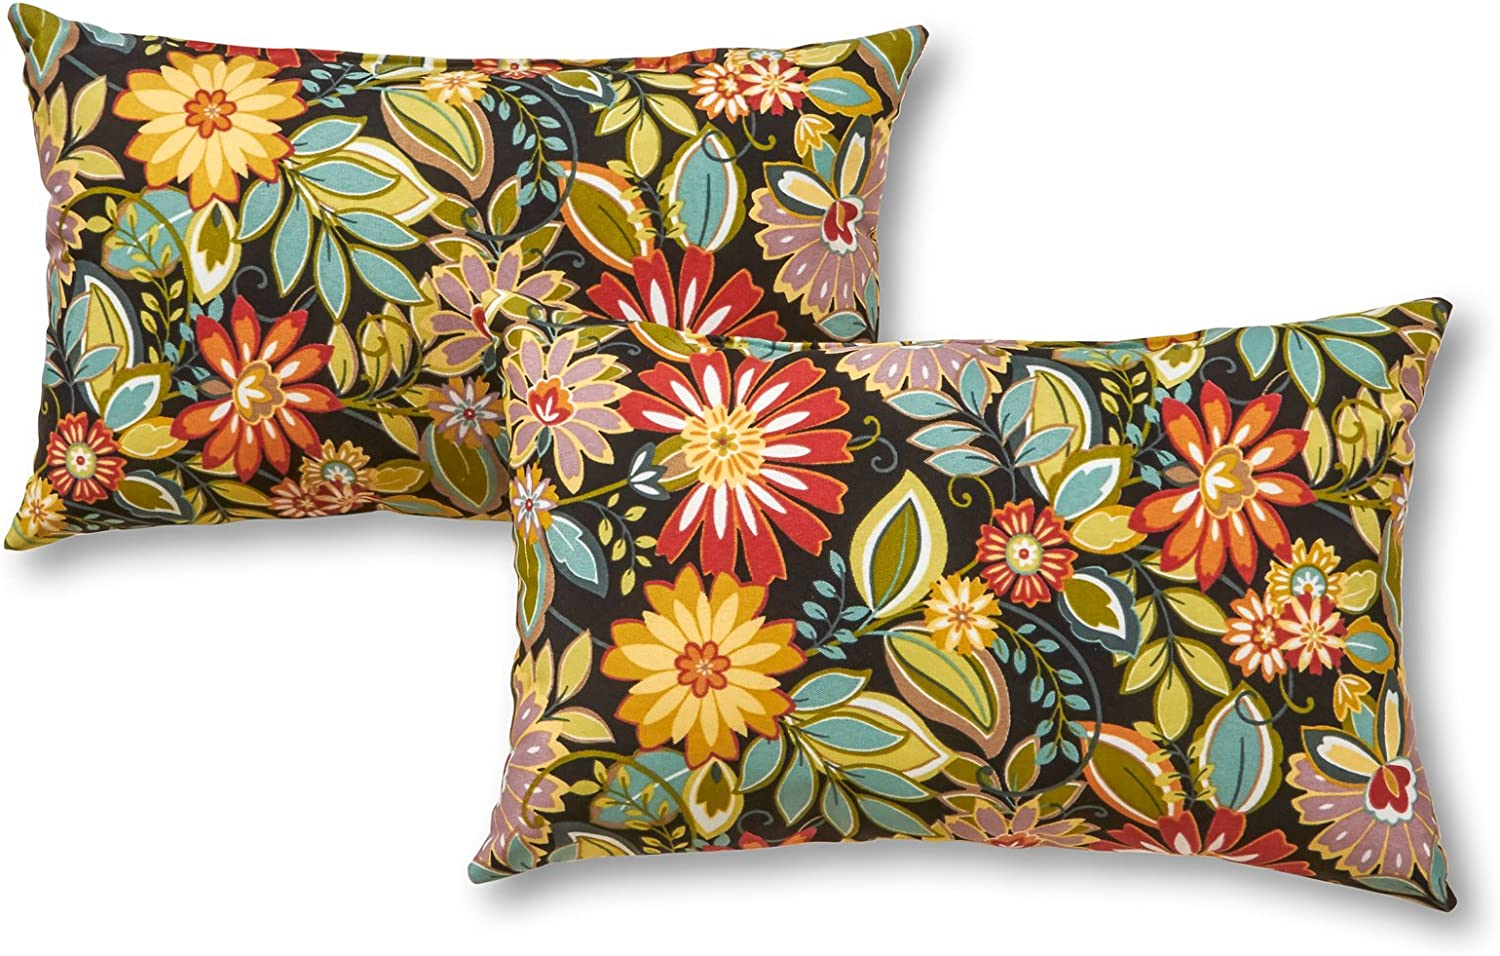 Greendale Home Fashions Set of 2 Outdoor 19x12-inch Rectangle Throw Pillows, Bloom